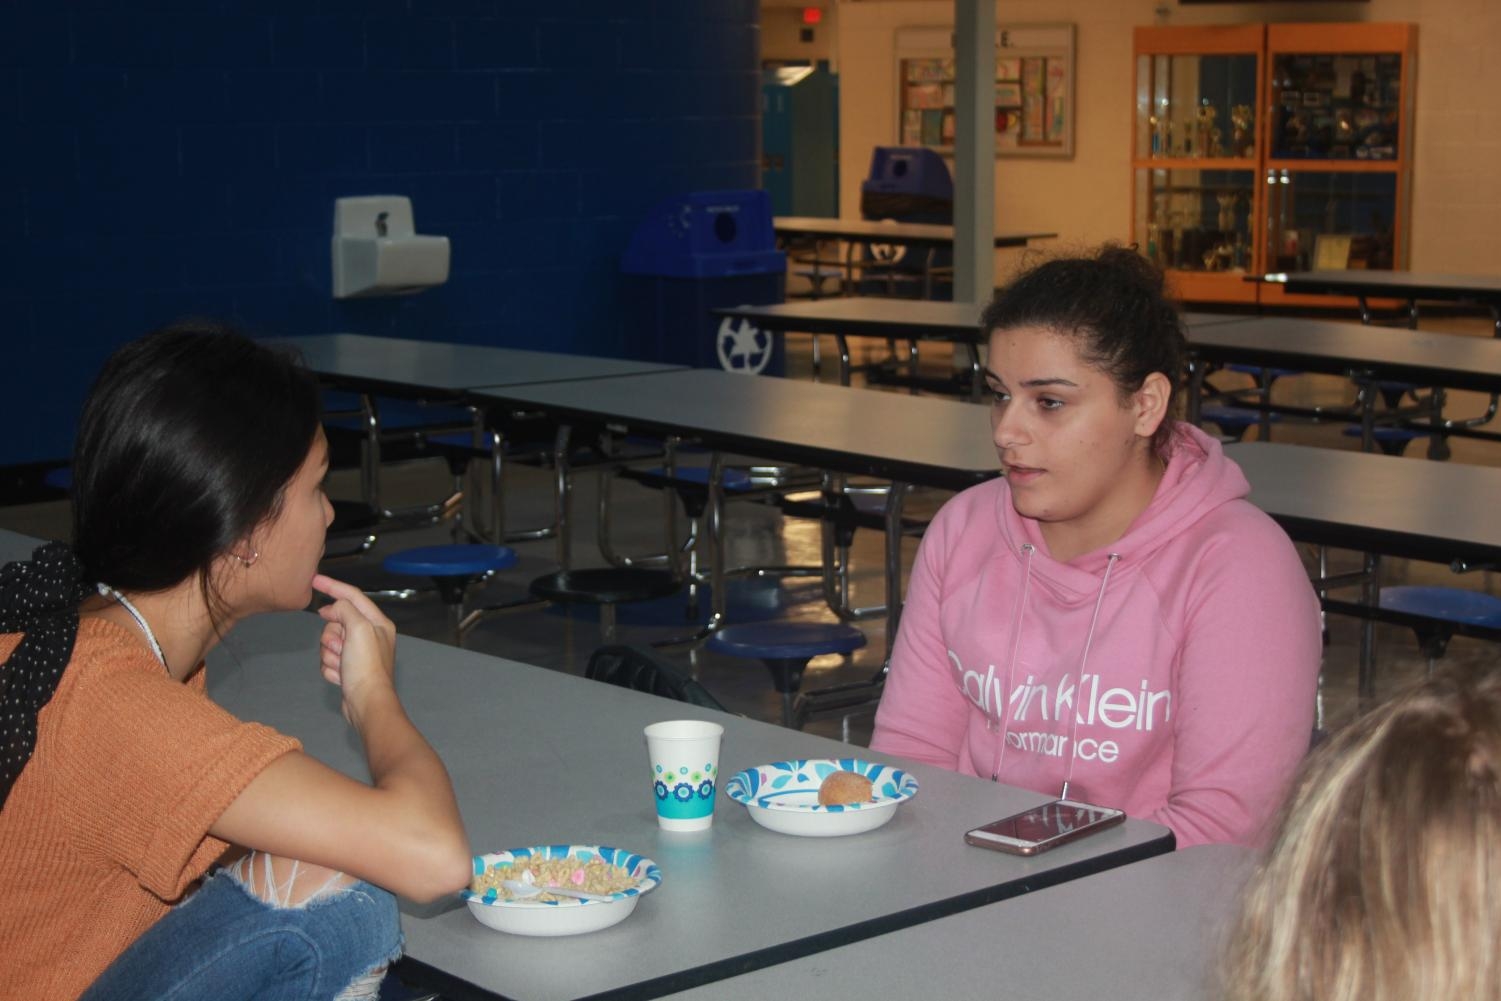 New students meet and talk to each other over breakfast.